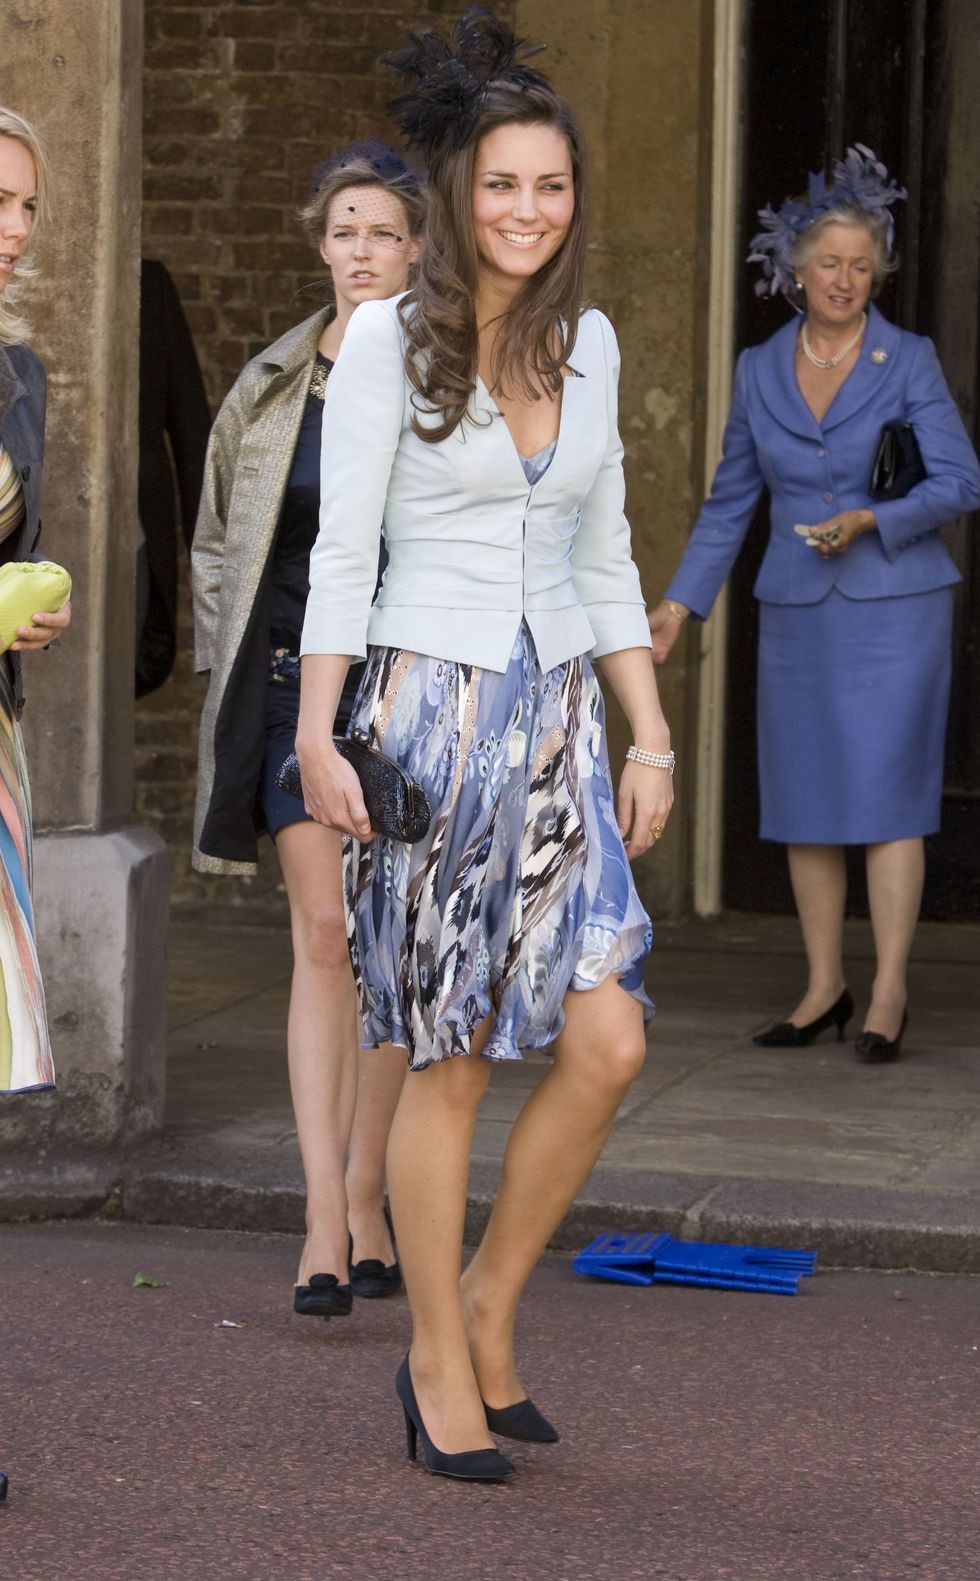 hbz kate middleton wedding guest gettyimages 157127172 1537823665 16079193643451554908256